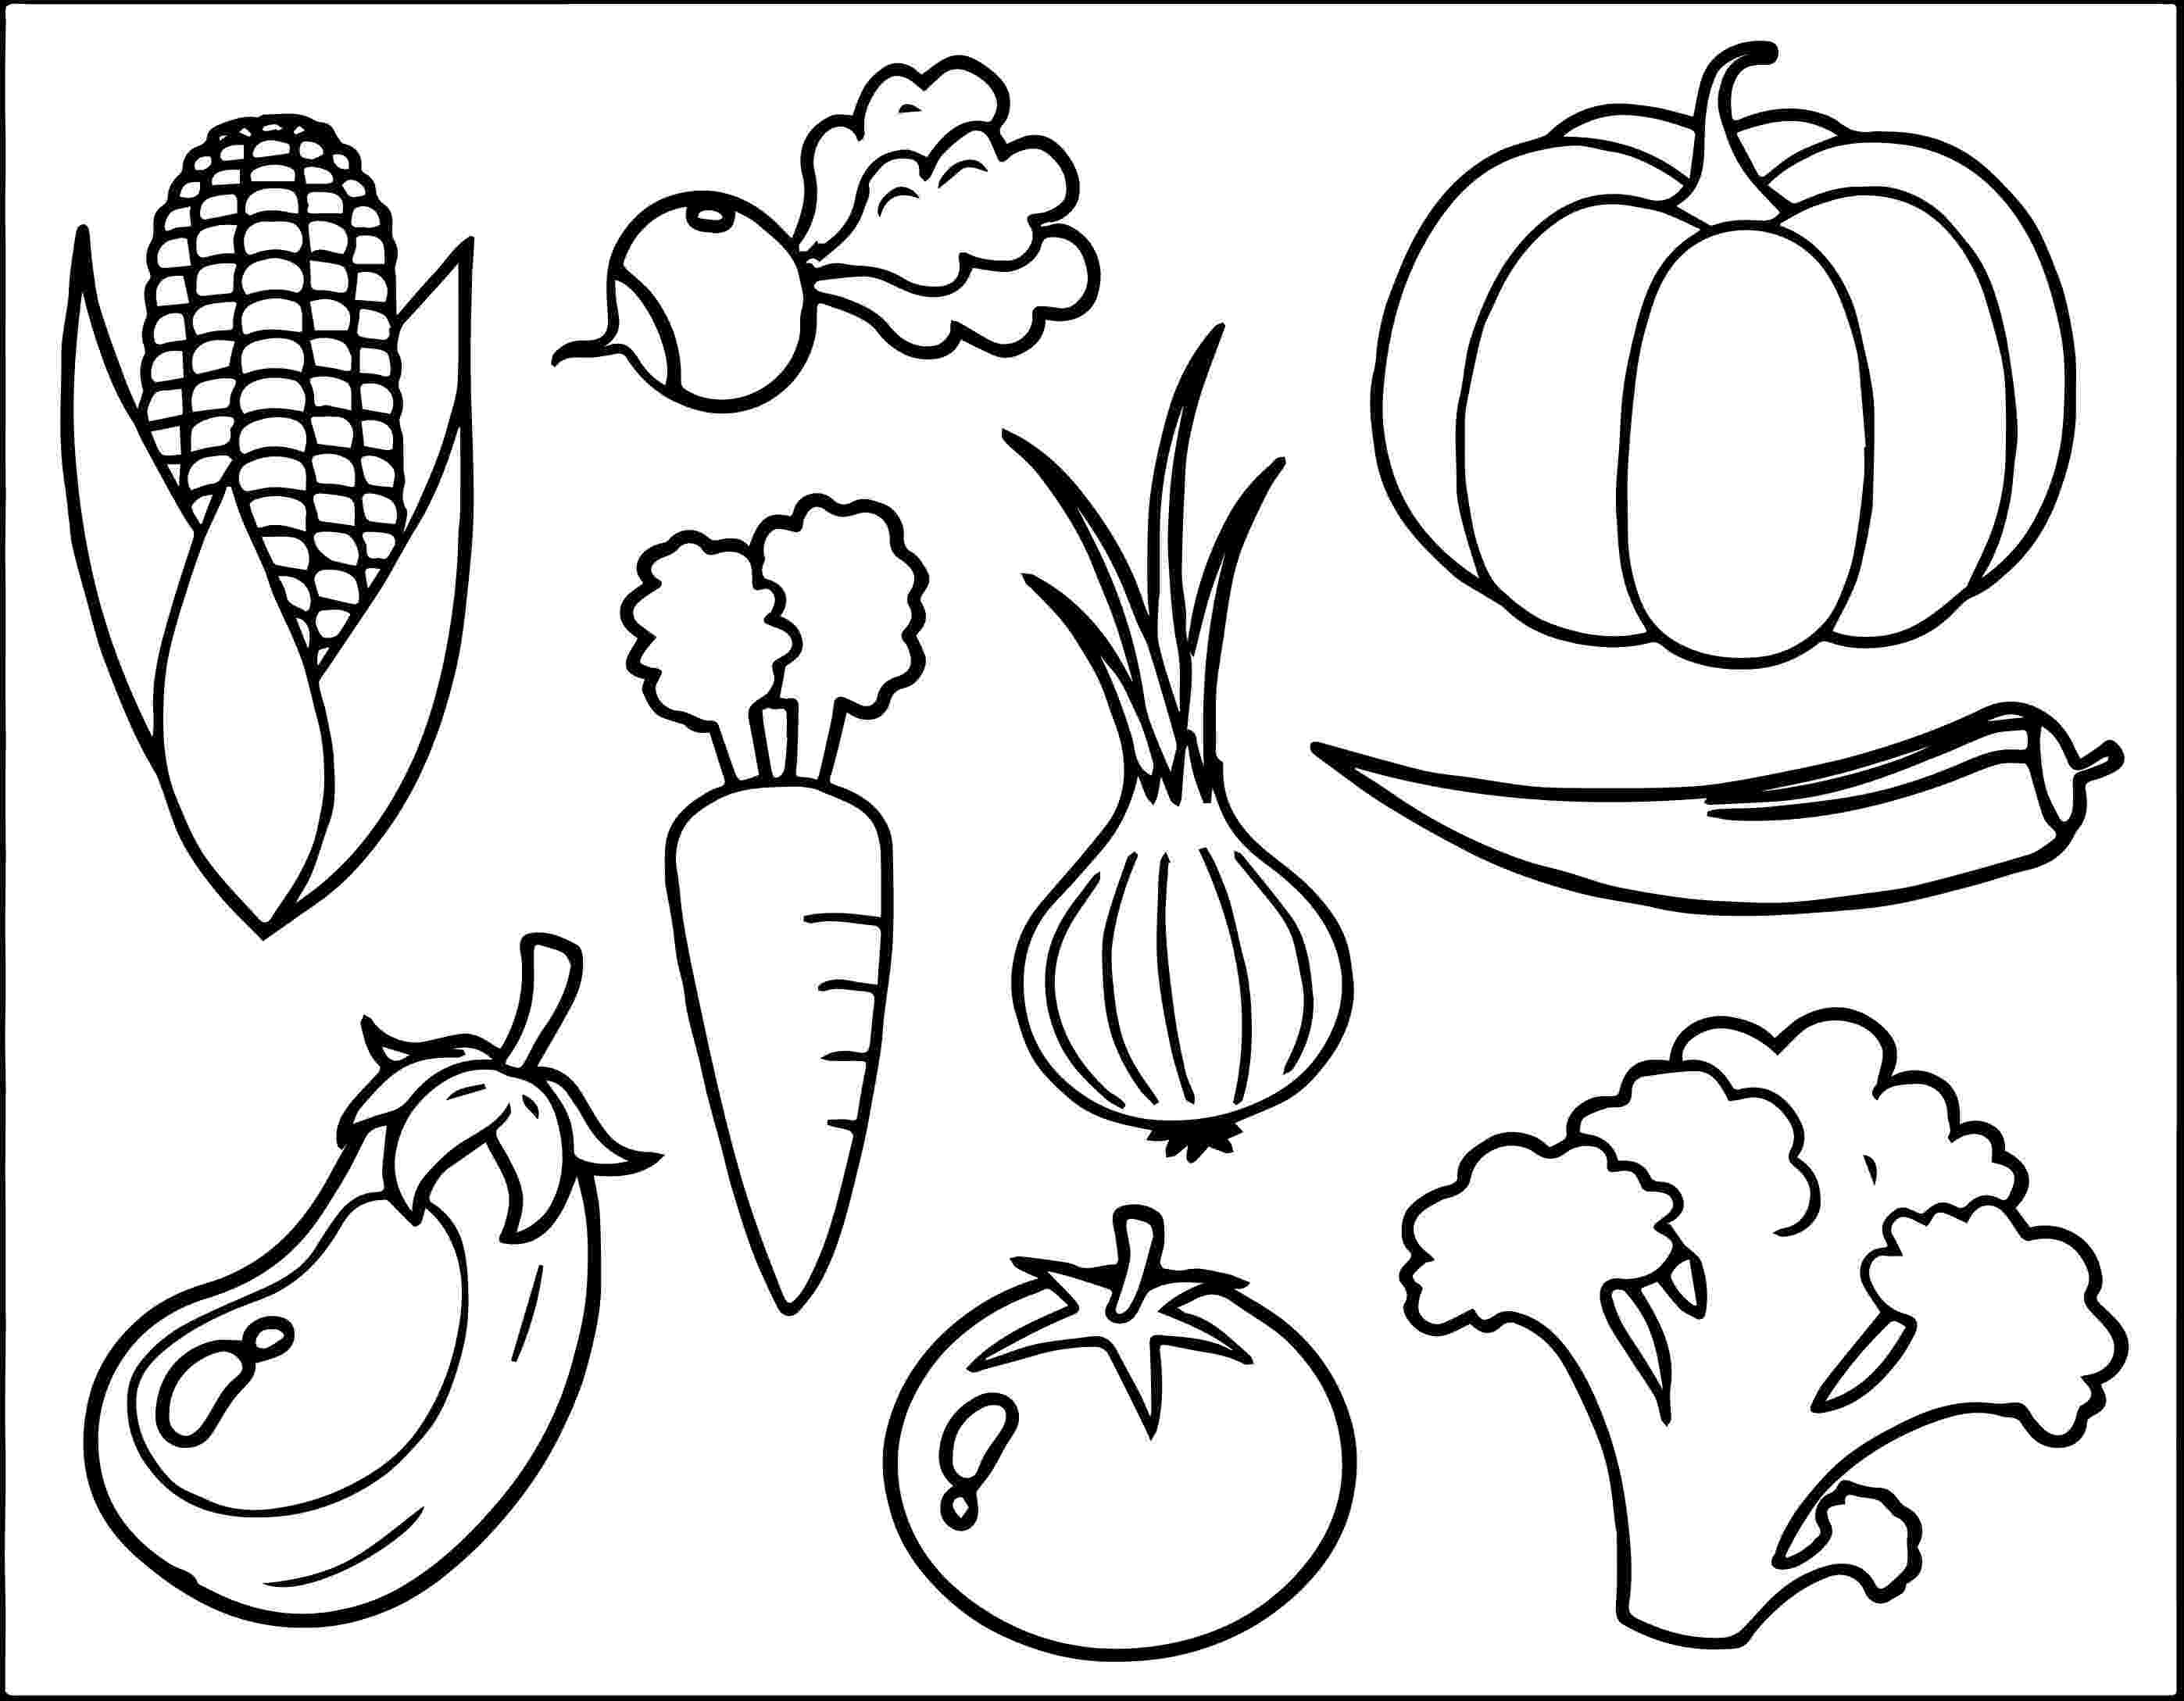 vegetable colouring pictures vegetable coloring pages best coloring pages for kids vegetable pictures colouring